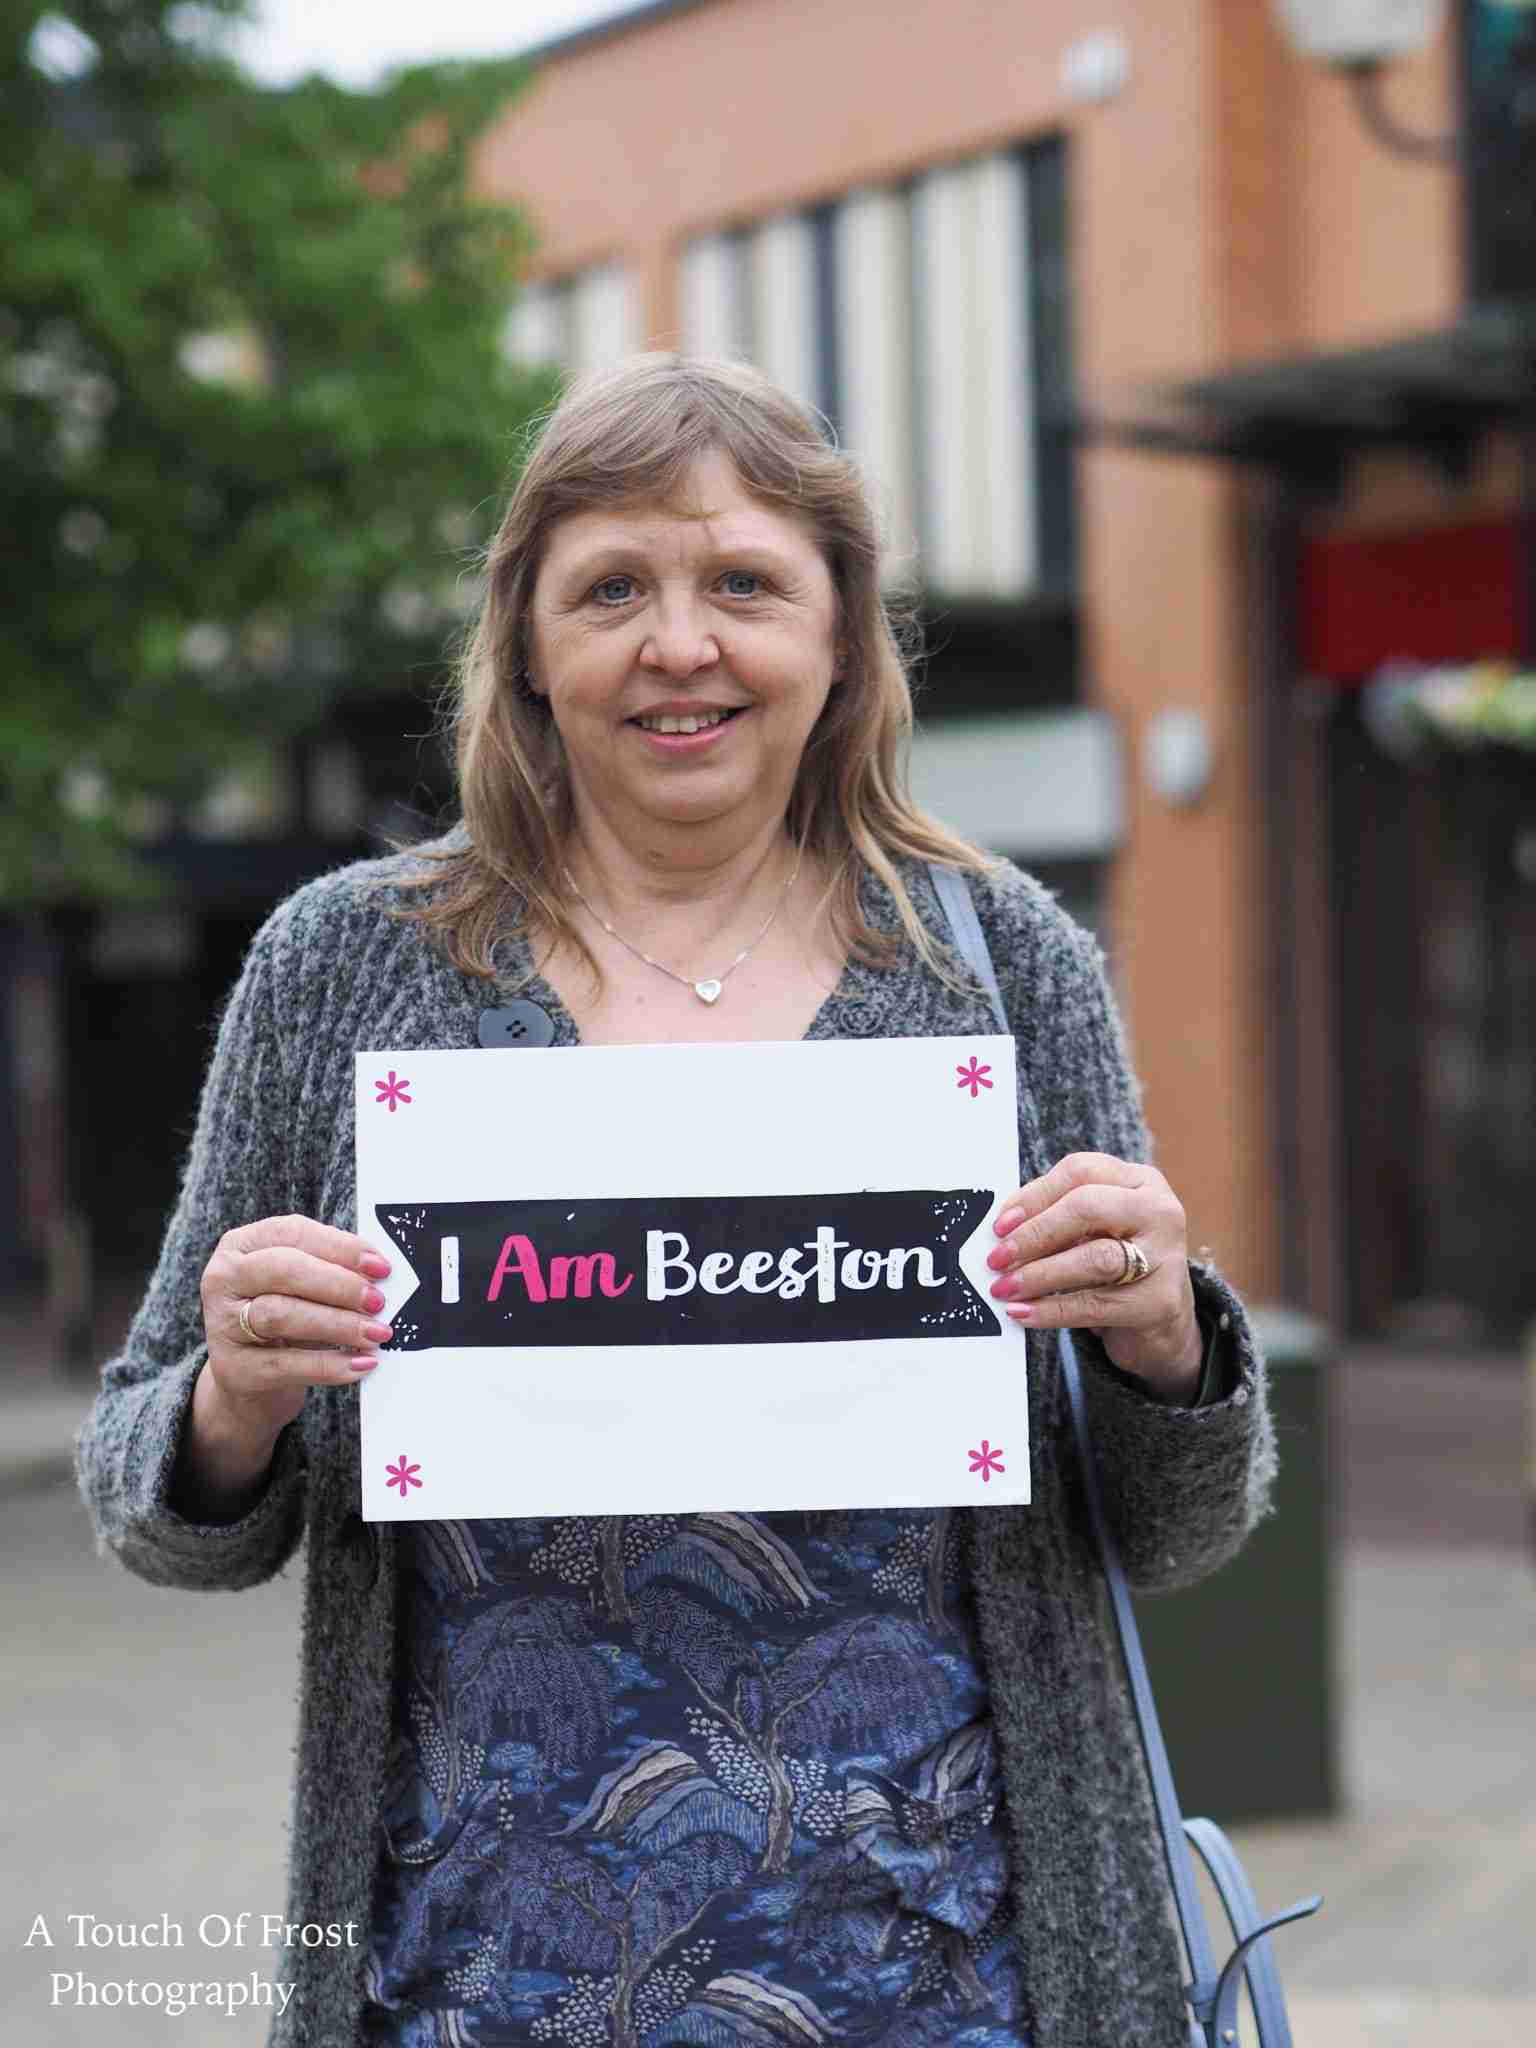 I Am Beeston: Julie Lord